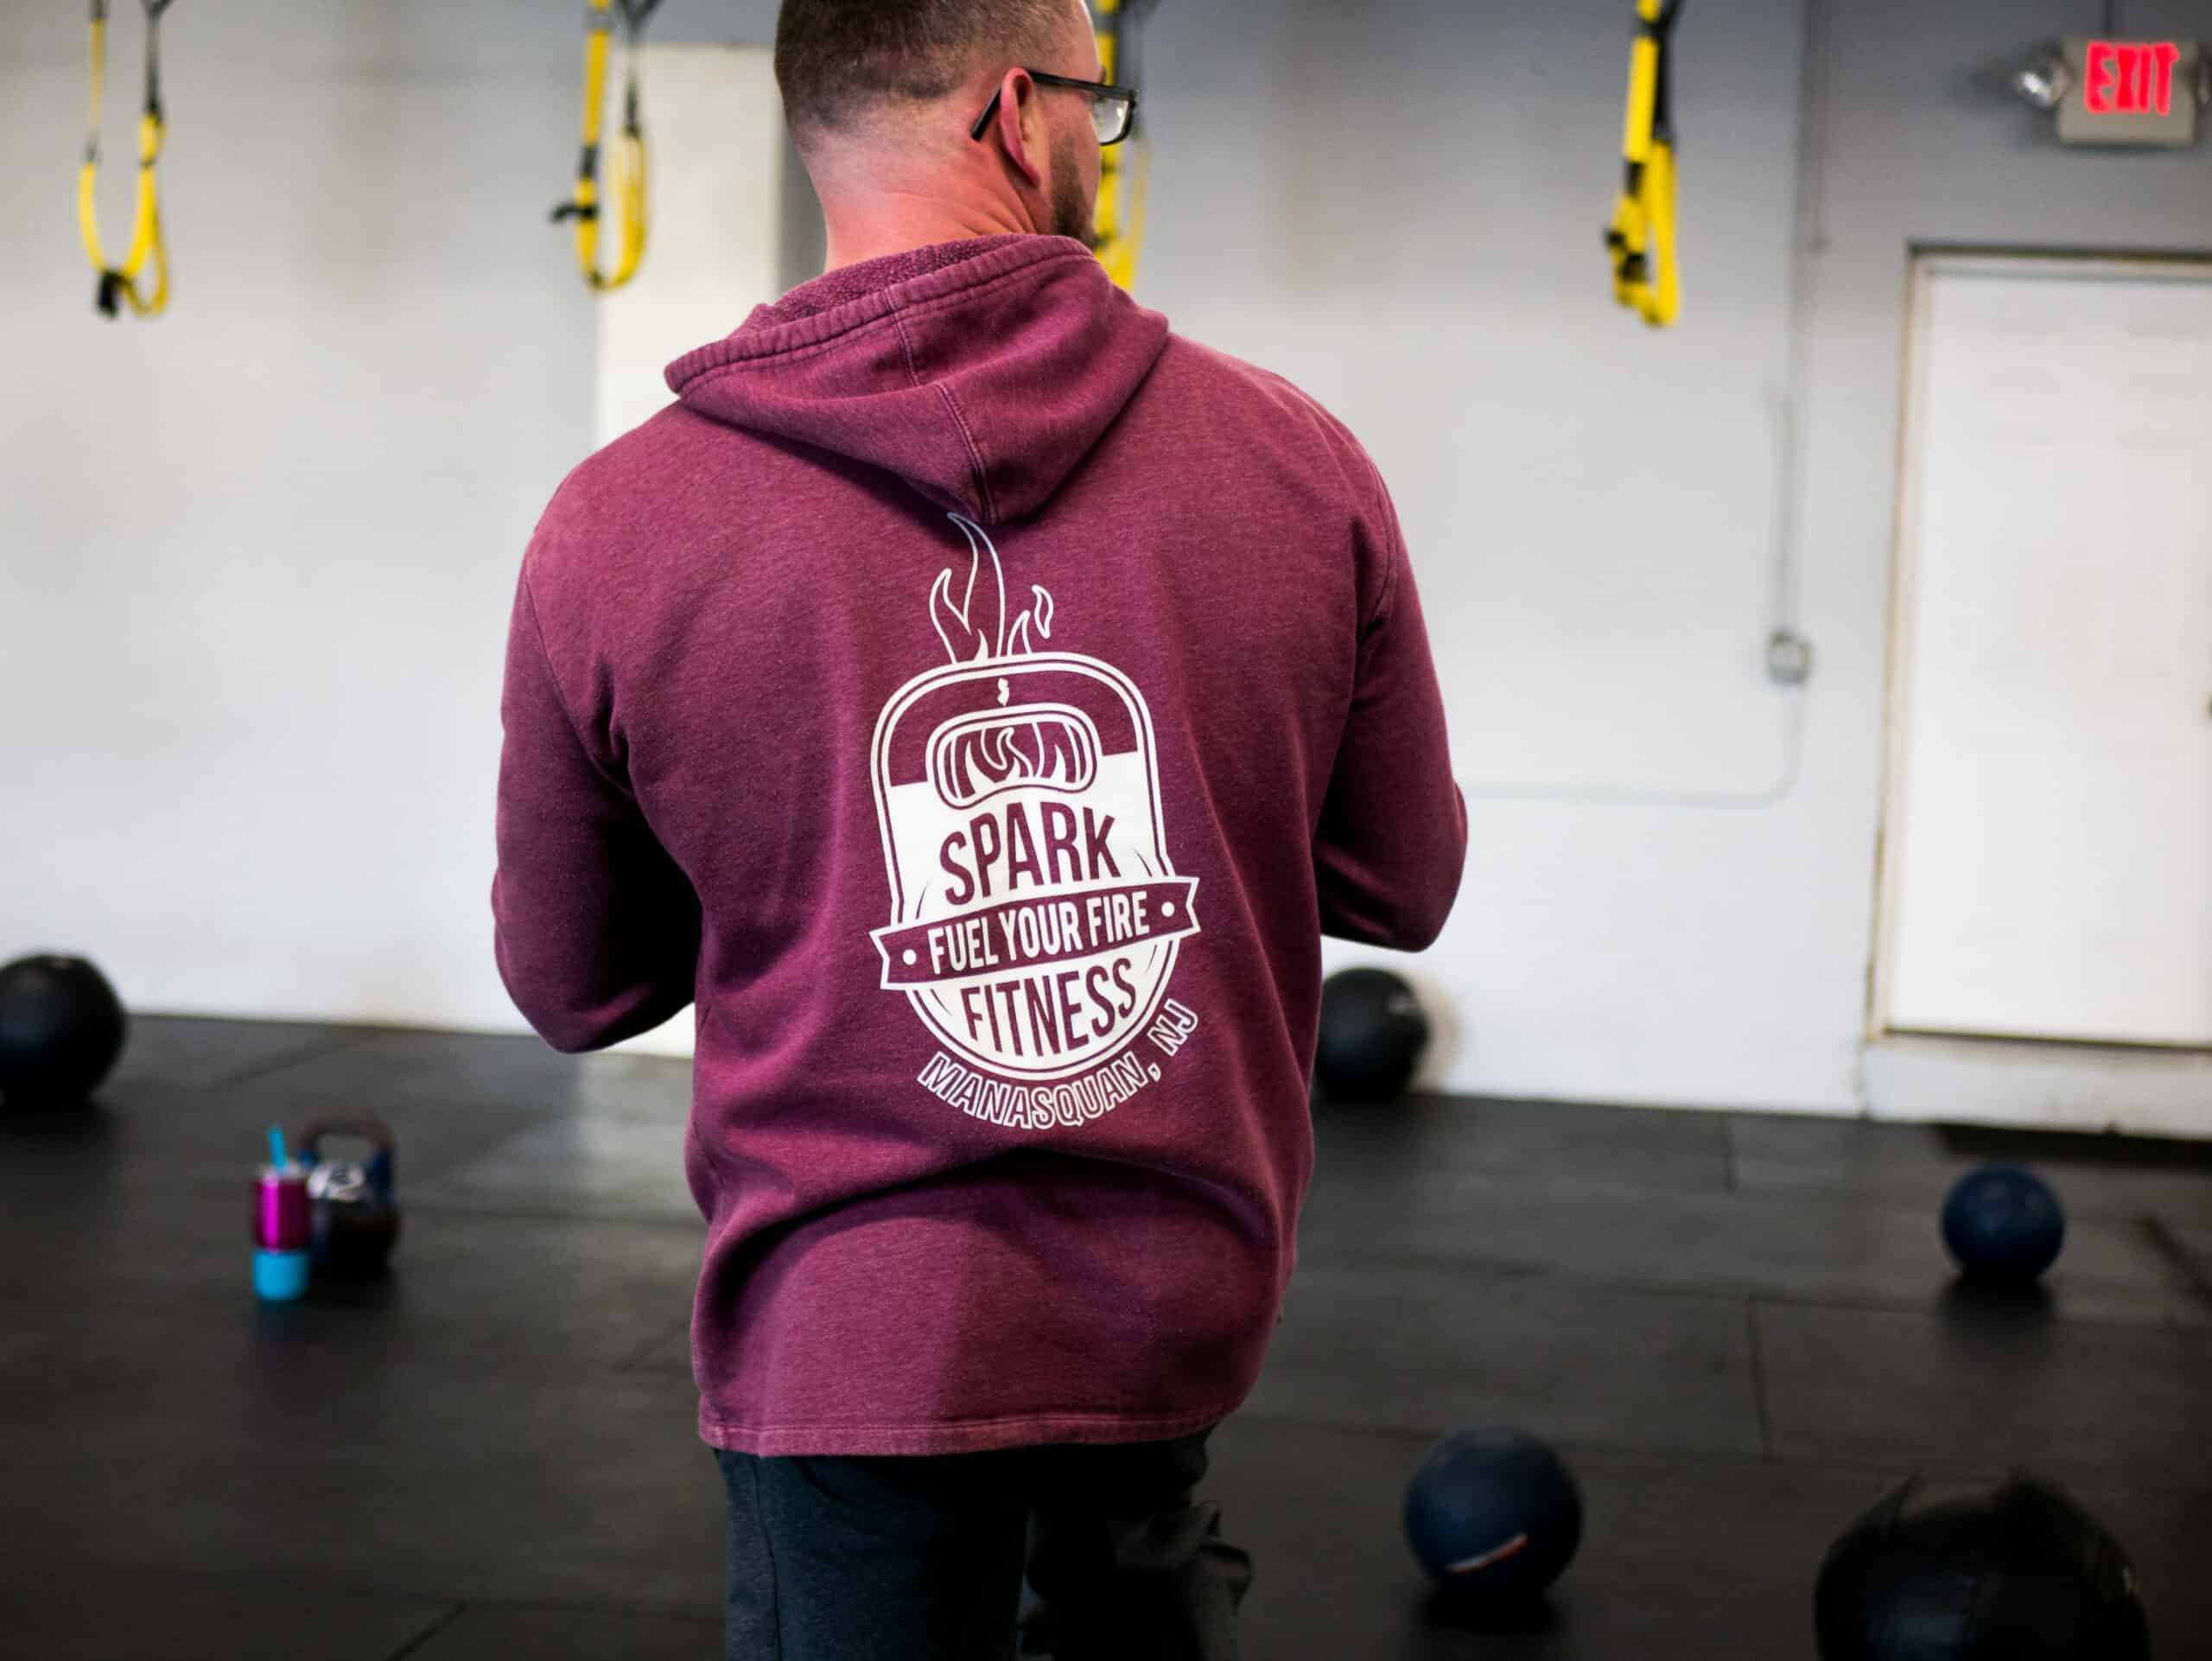 Spark Fitness coach and owner Kevin Byrnes